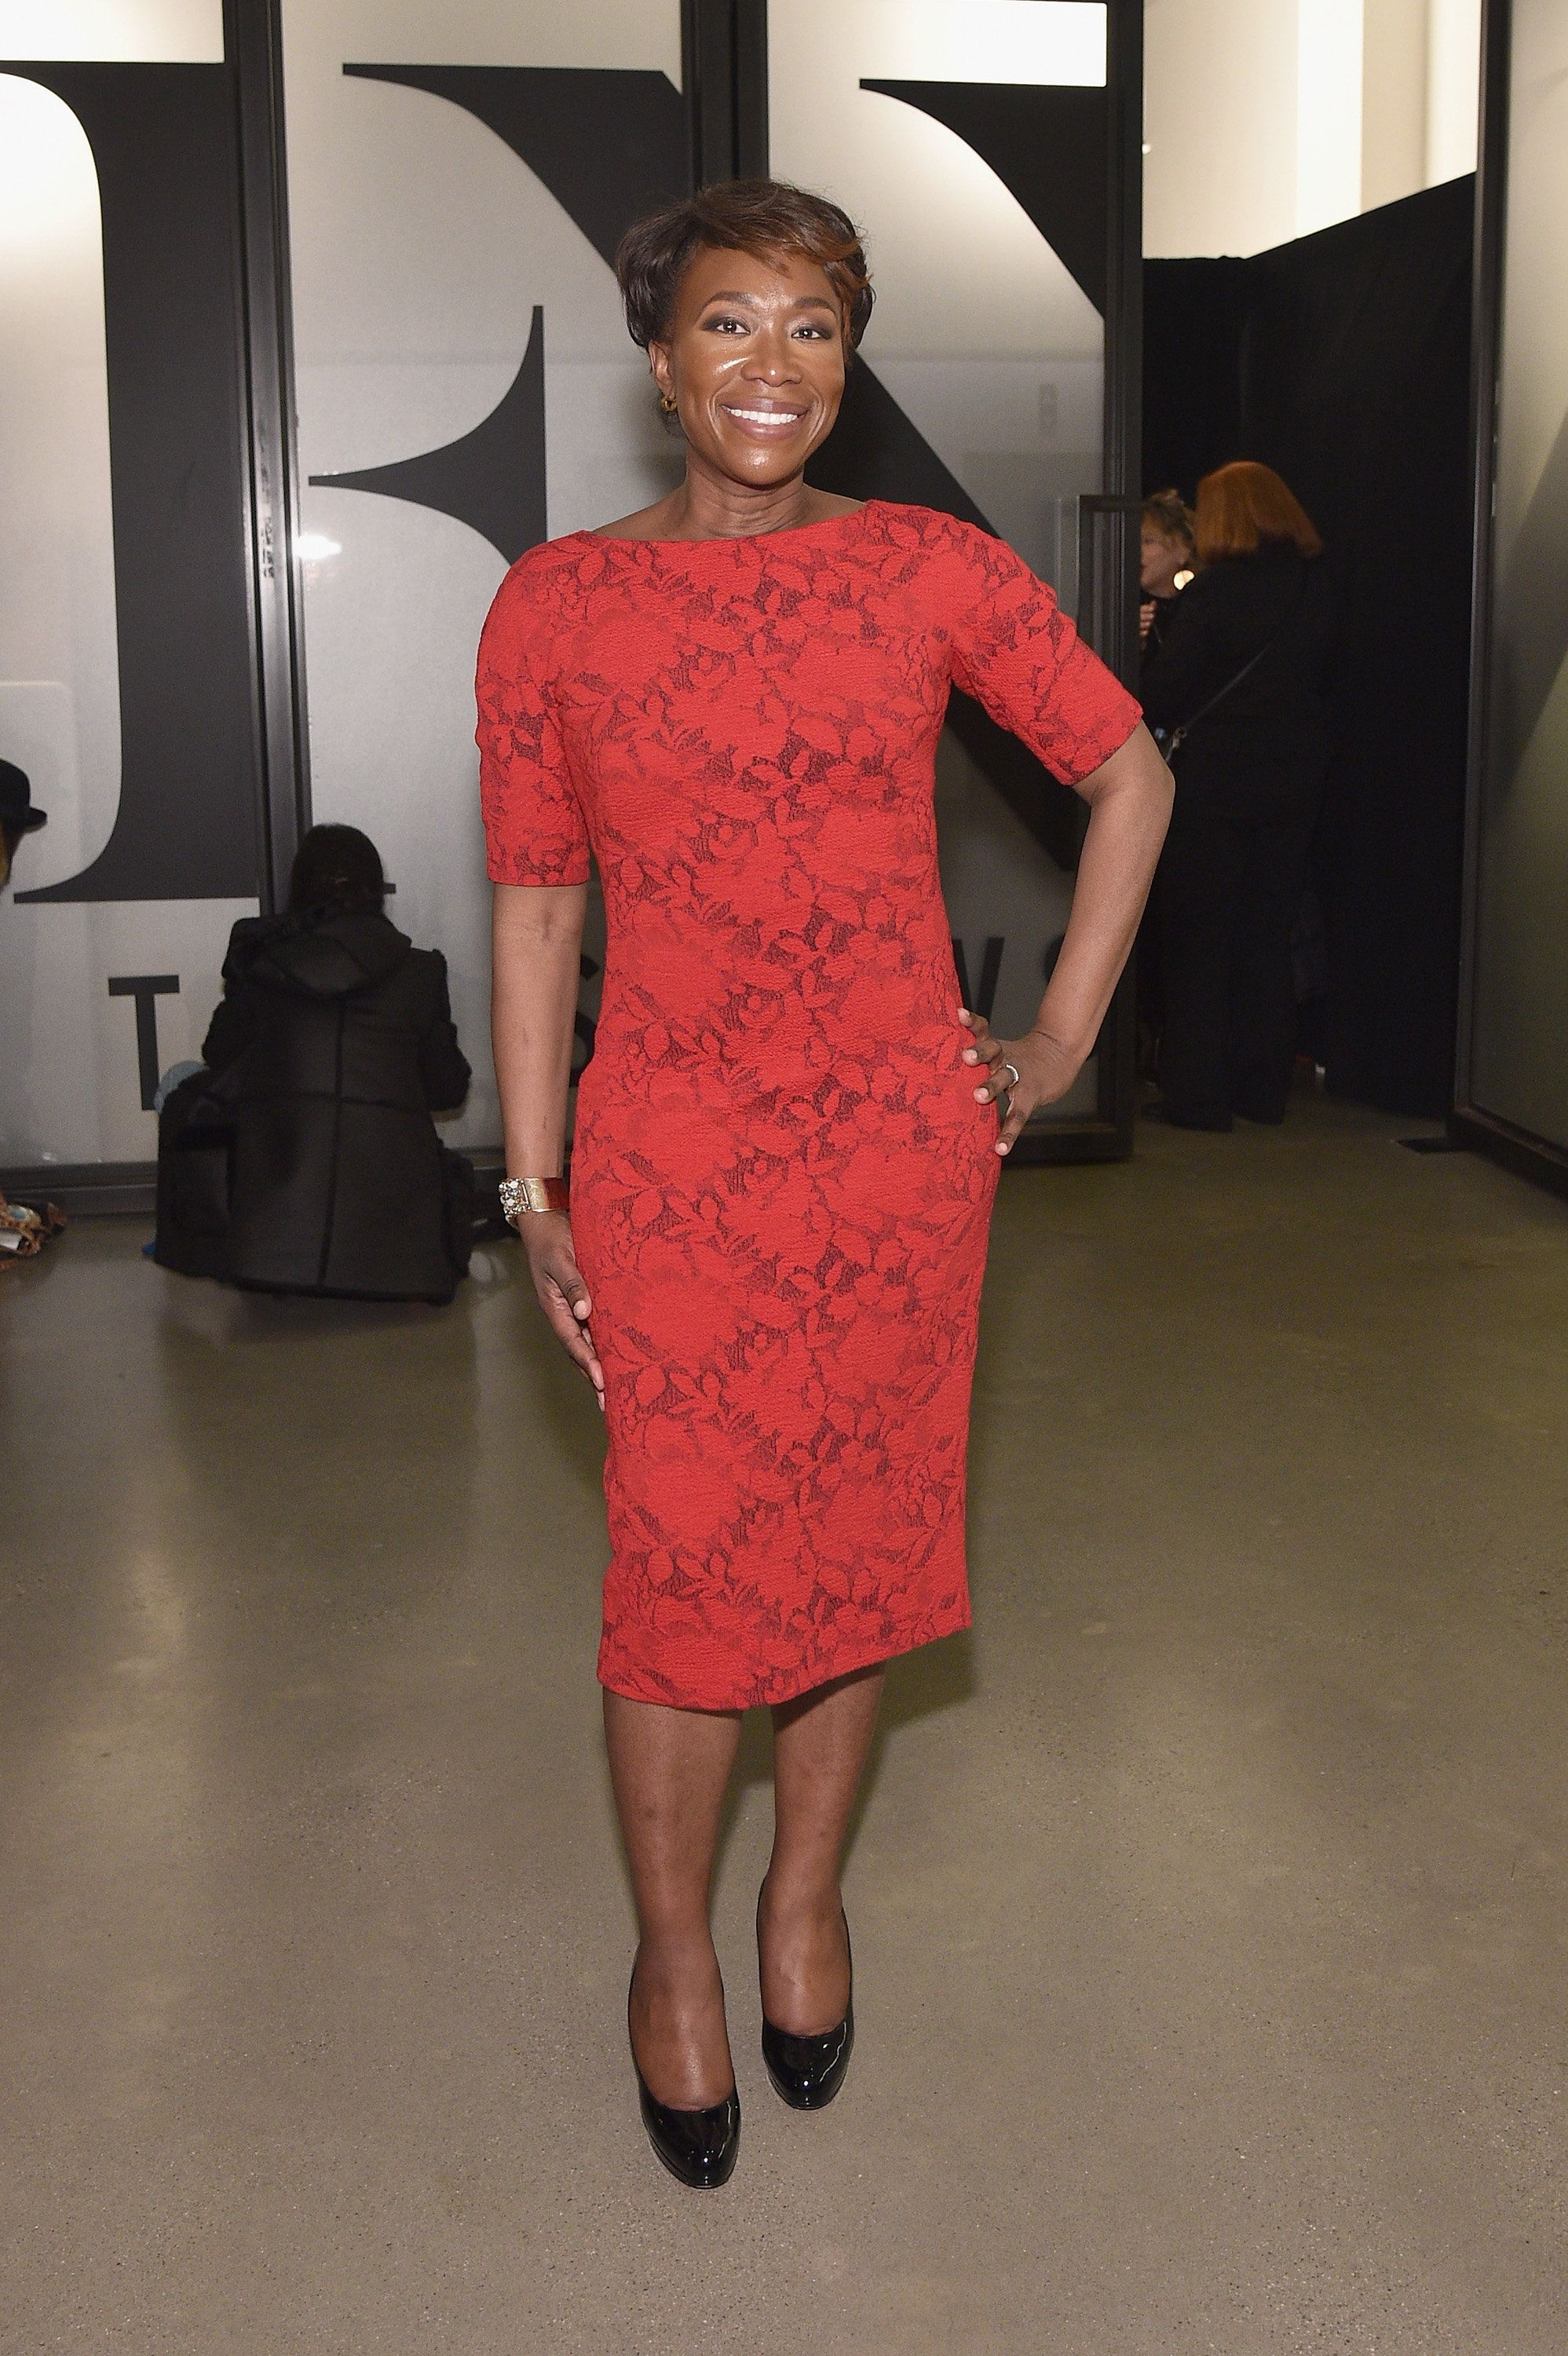 NEW YORK, NY - FEBRUARY 10:  Journalist Joy-Ann Reid poses during IMG NYFW: The Shows at Spring Studios on February 10, 2018 in New York City.  (Photo by Bryan Bedder/Getty Images for IMG)